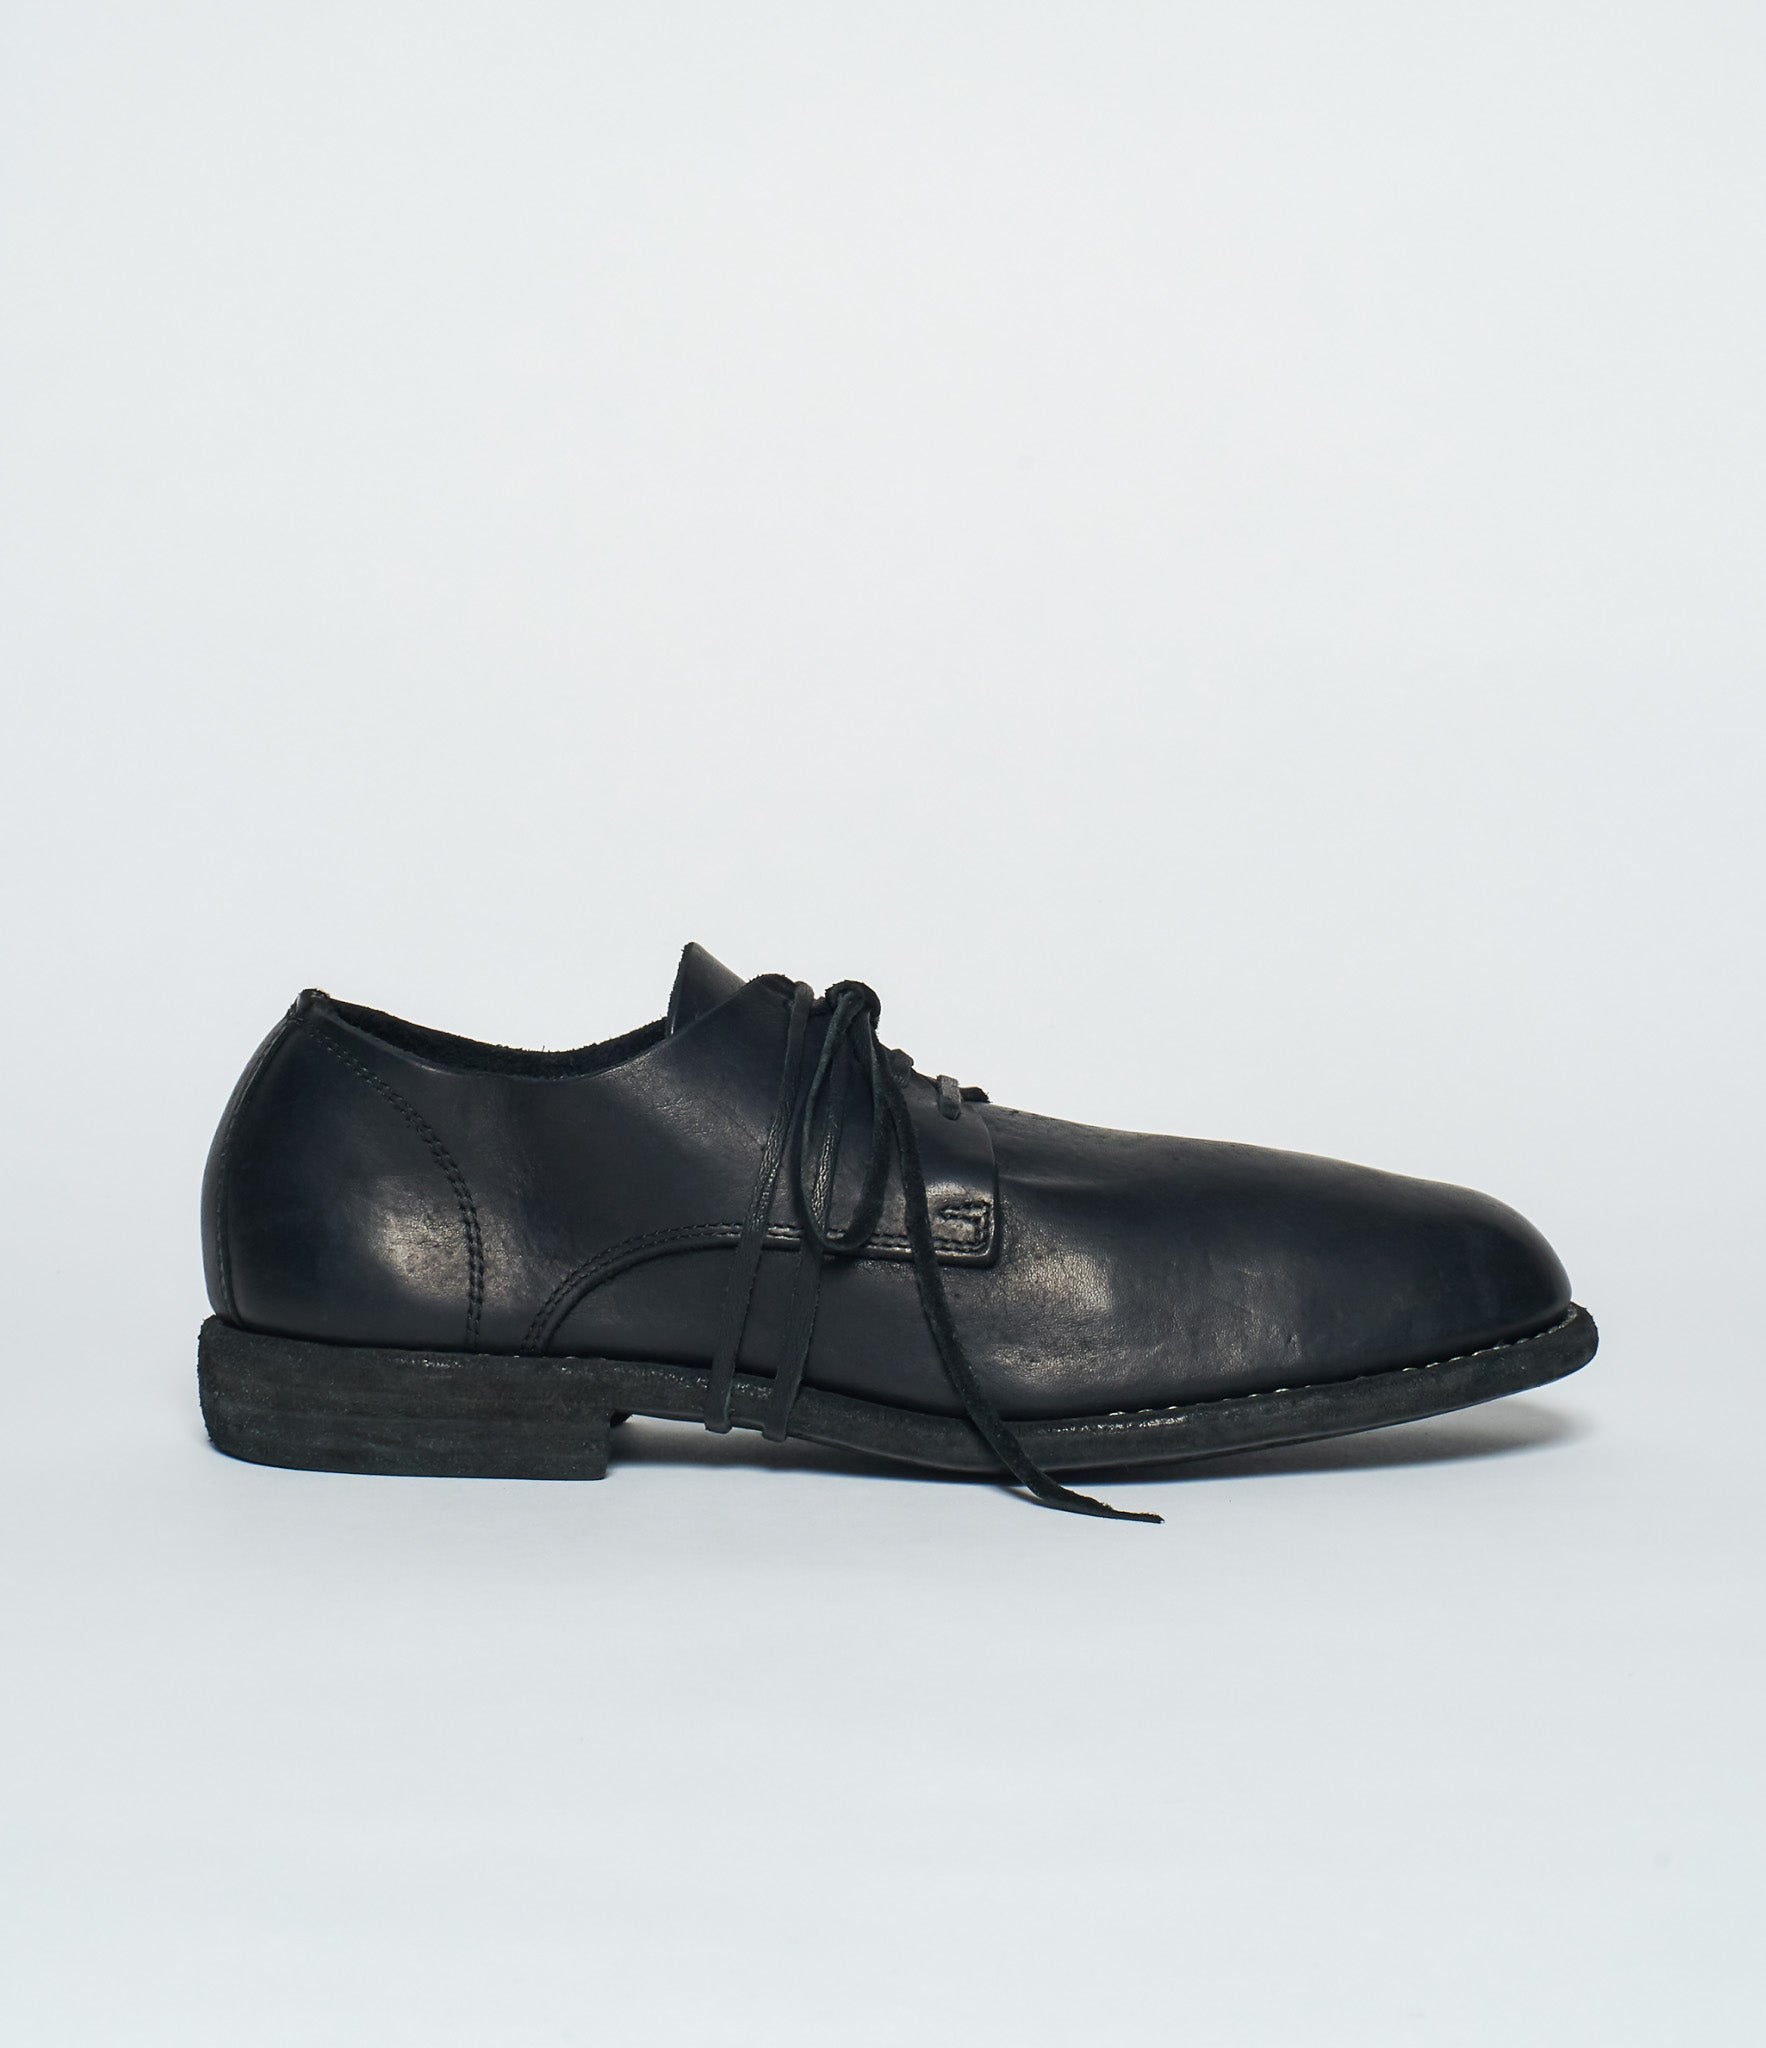 Guidi 992MS Black Calf Full Grain Derby